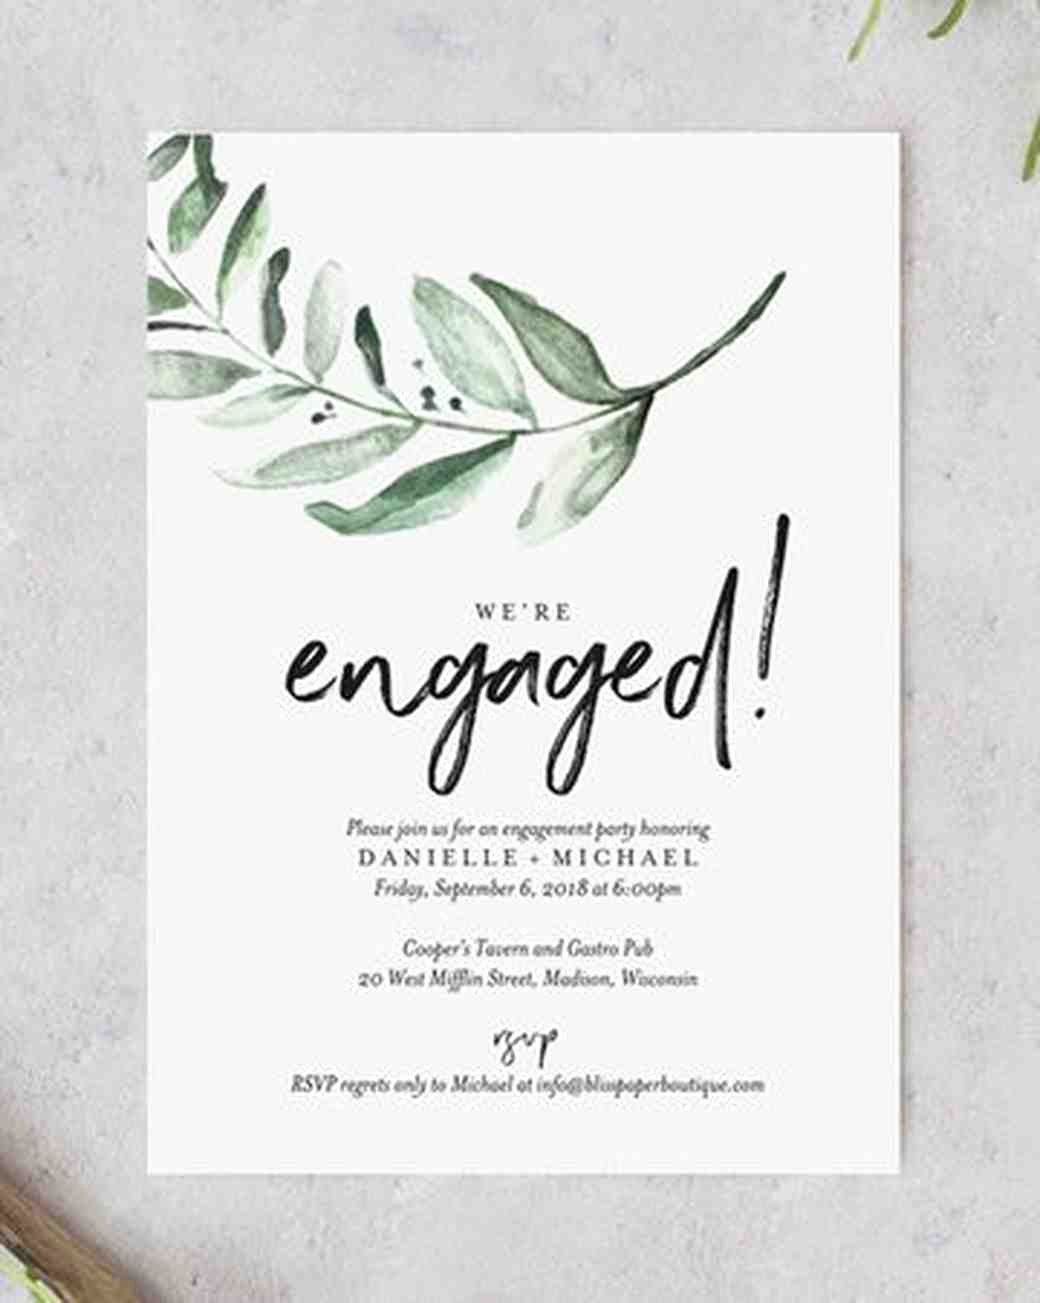 Engagment Party Invitation Wording Luxury 20 Engagement Party Invitations